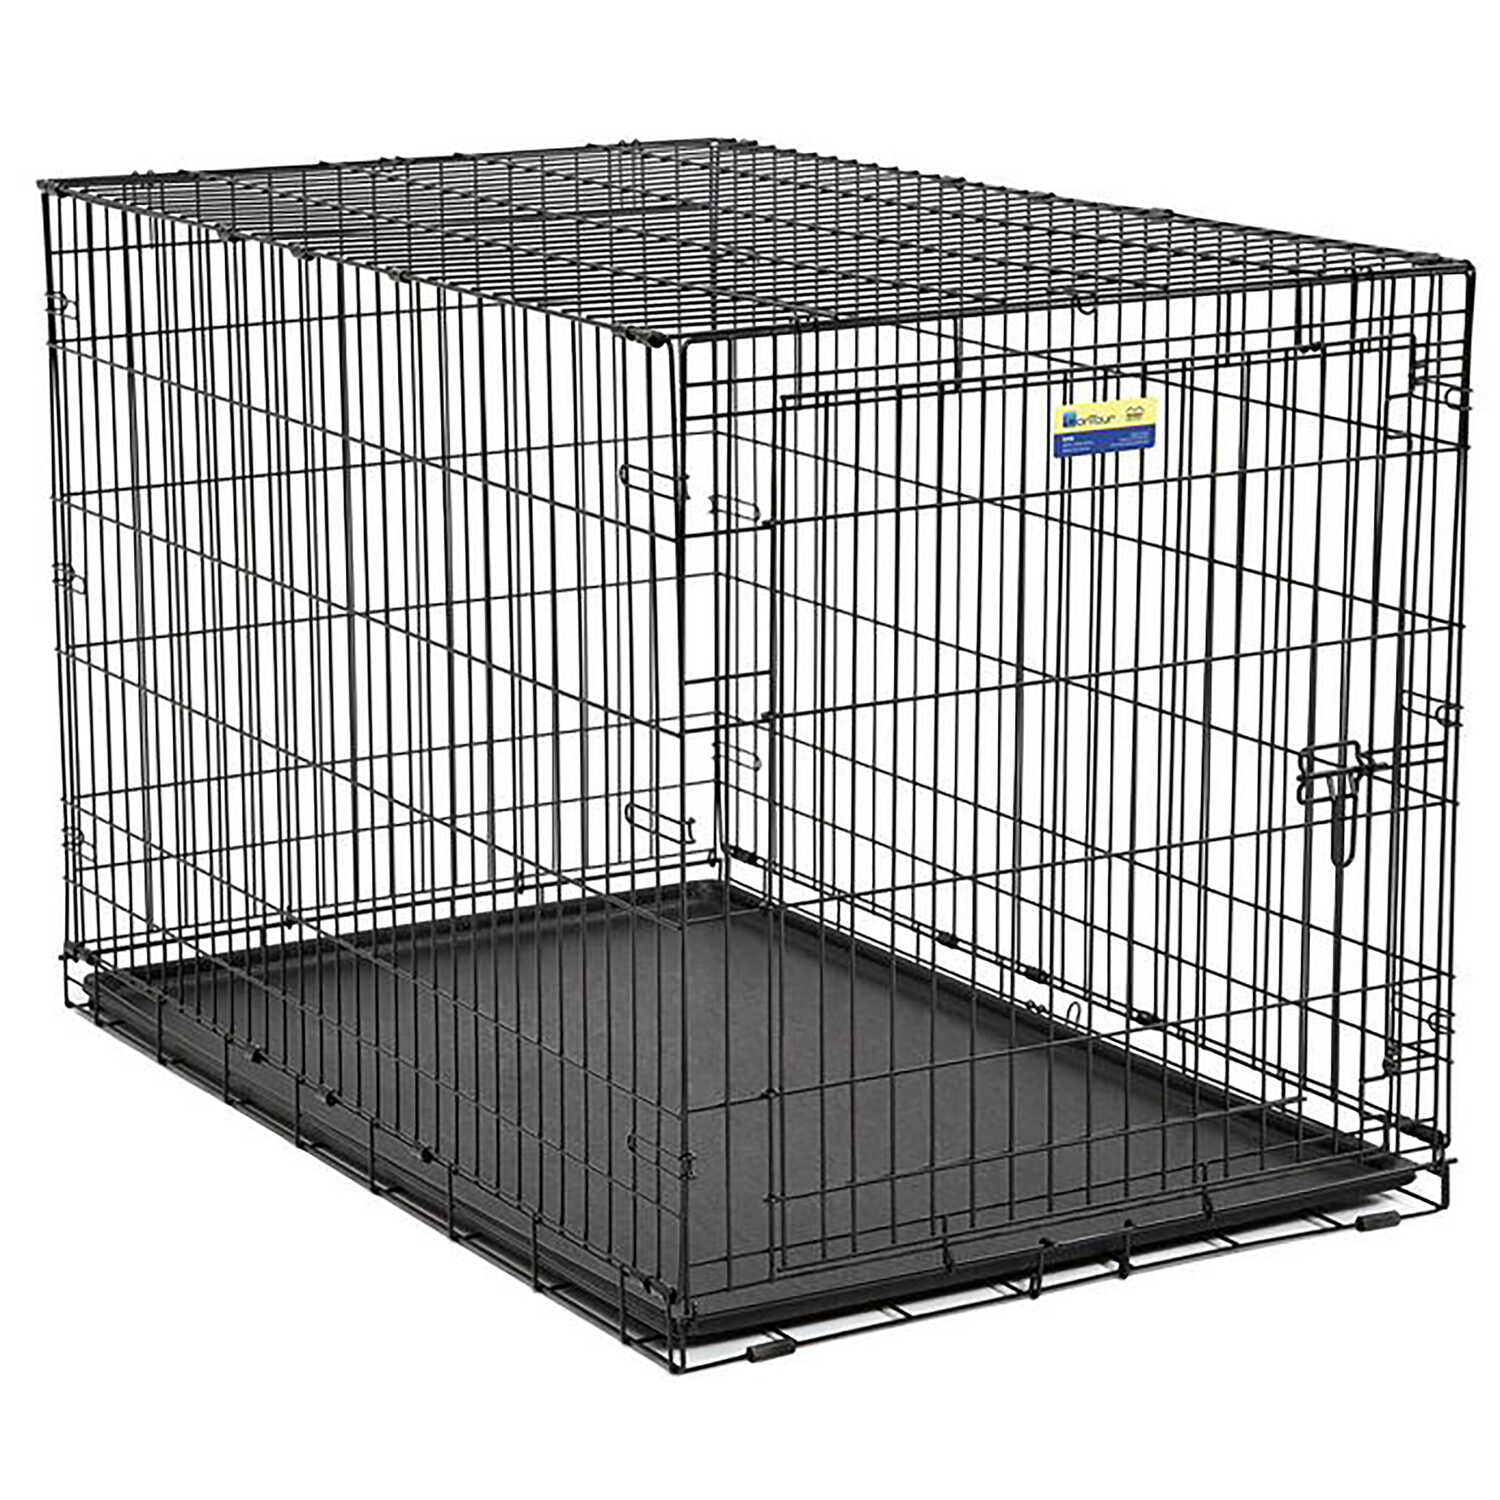 Contour  Extra Large  Steel  Dog Crate  31.9 in. H x 33 in. W